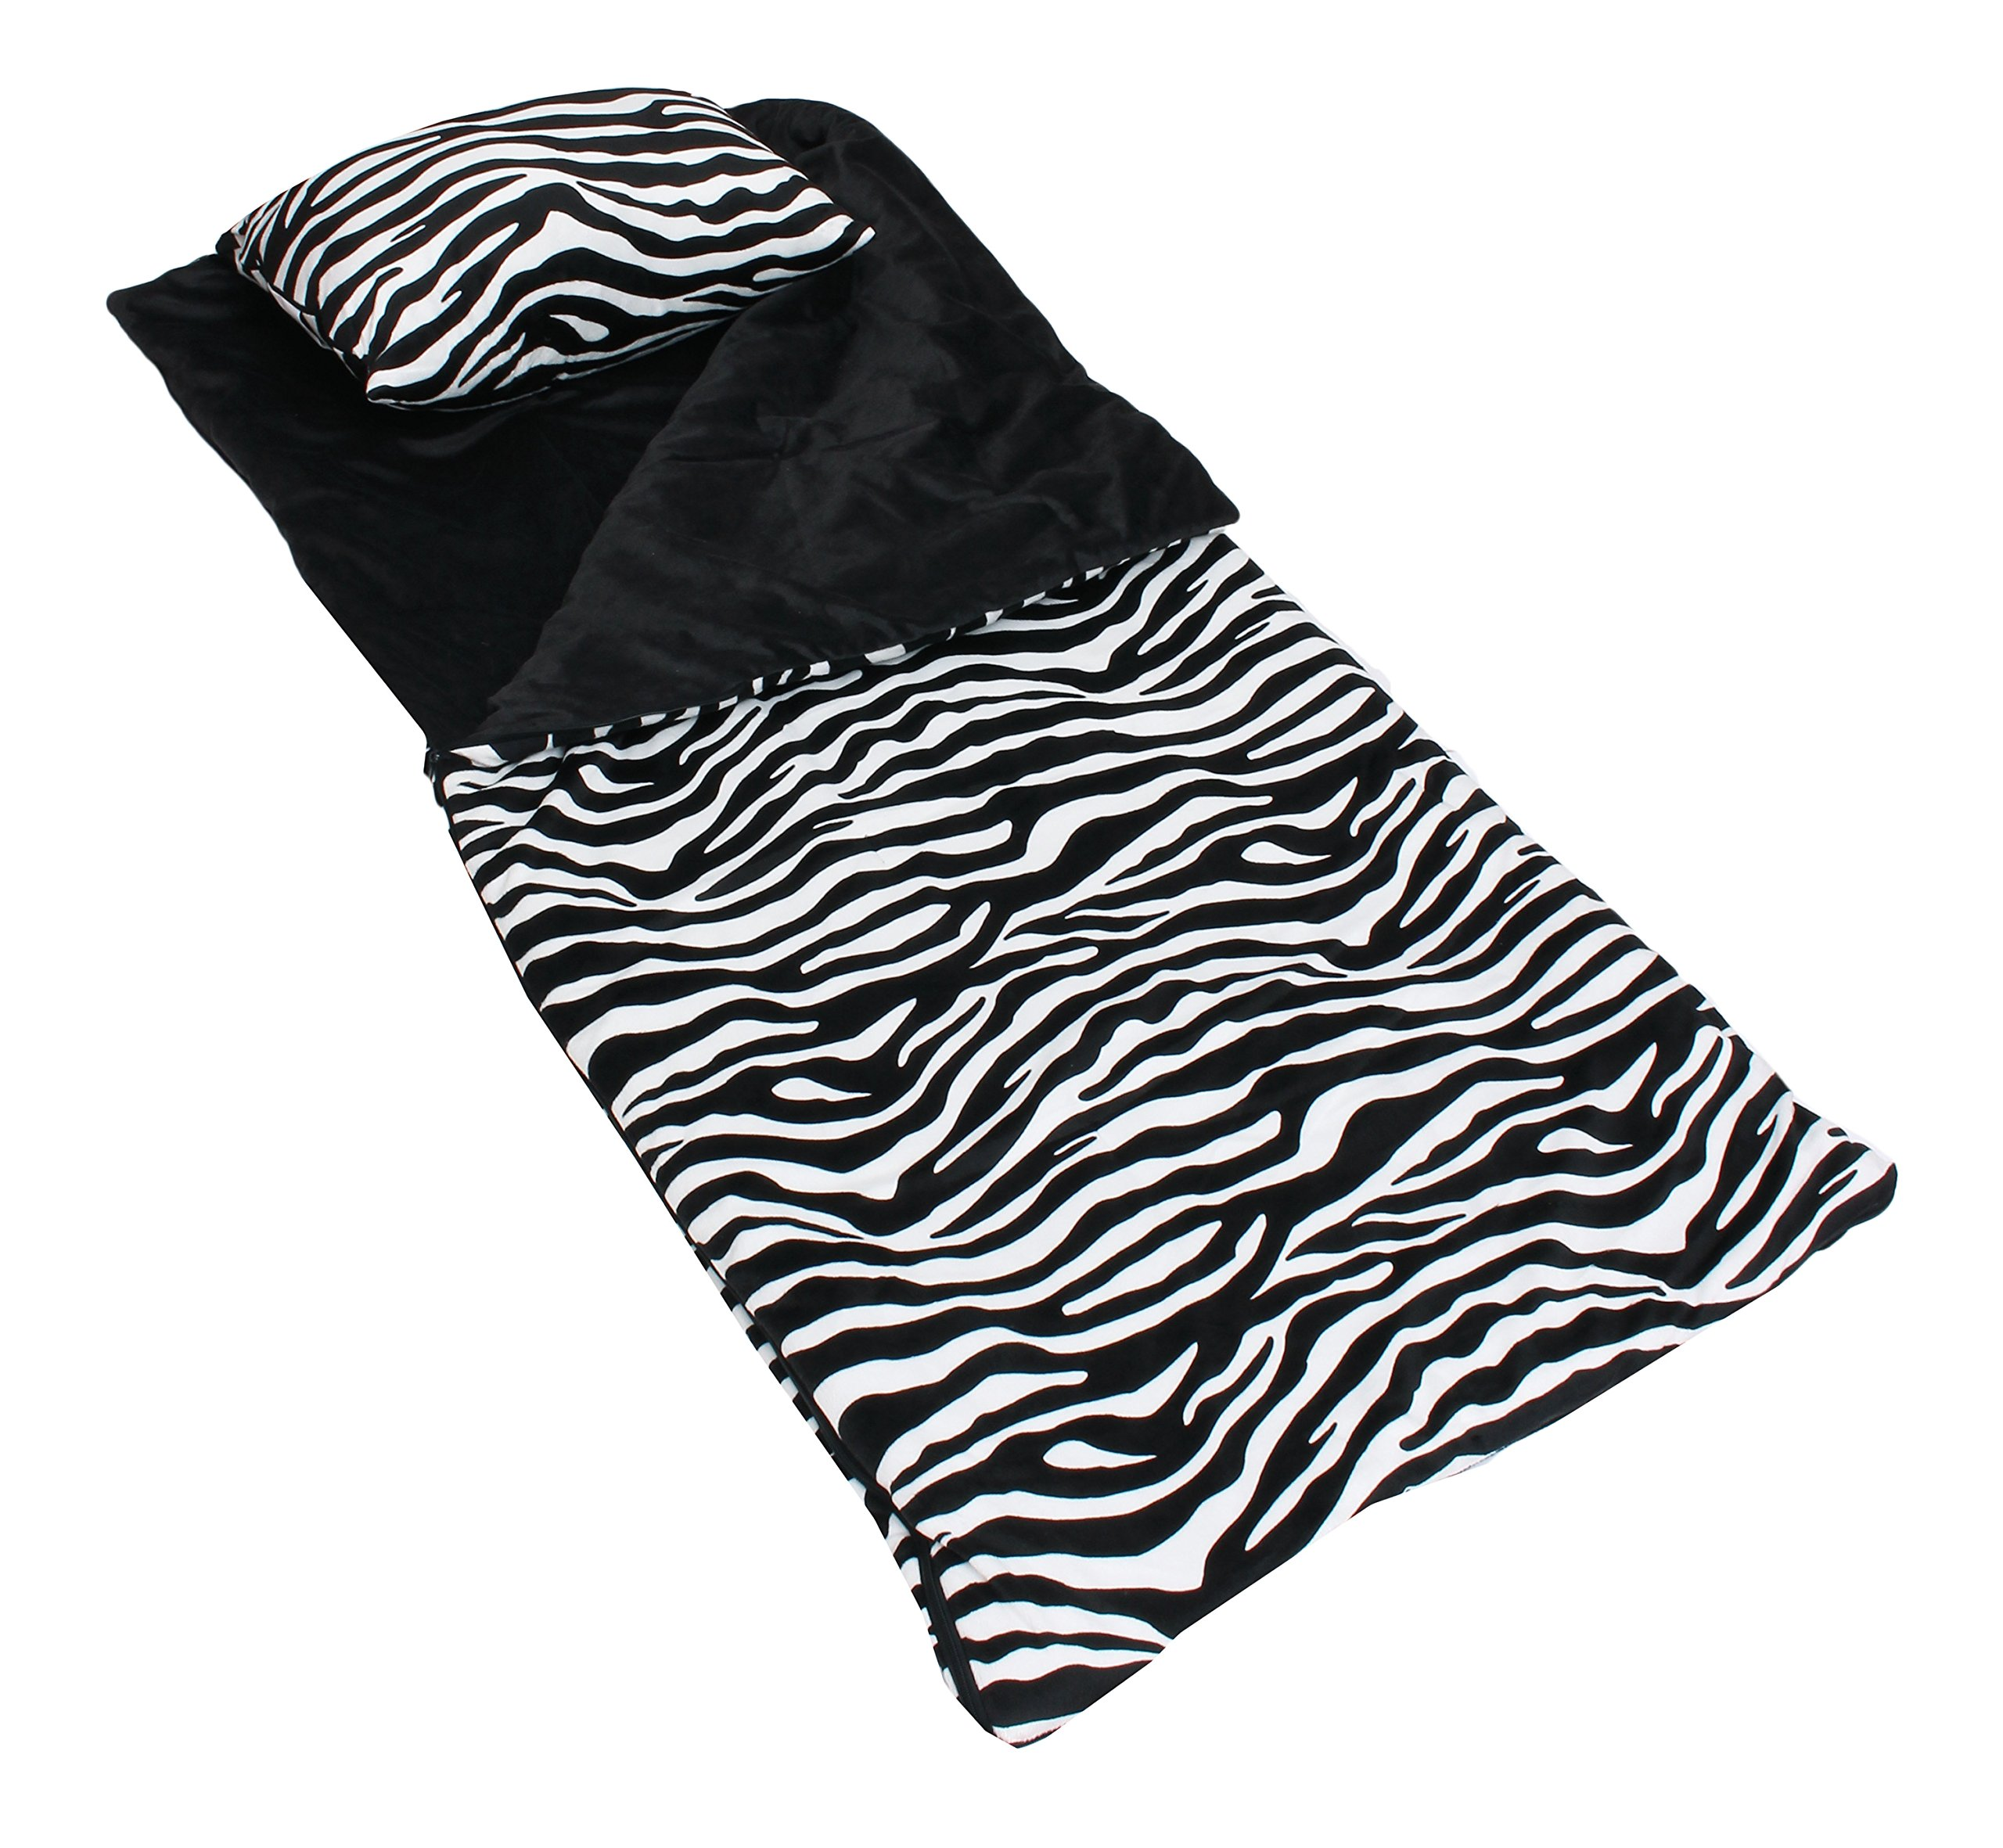 Thro by Marlo Lorenz Zebra Printed Sleeping Bag with Attached Pillow, Black/White